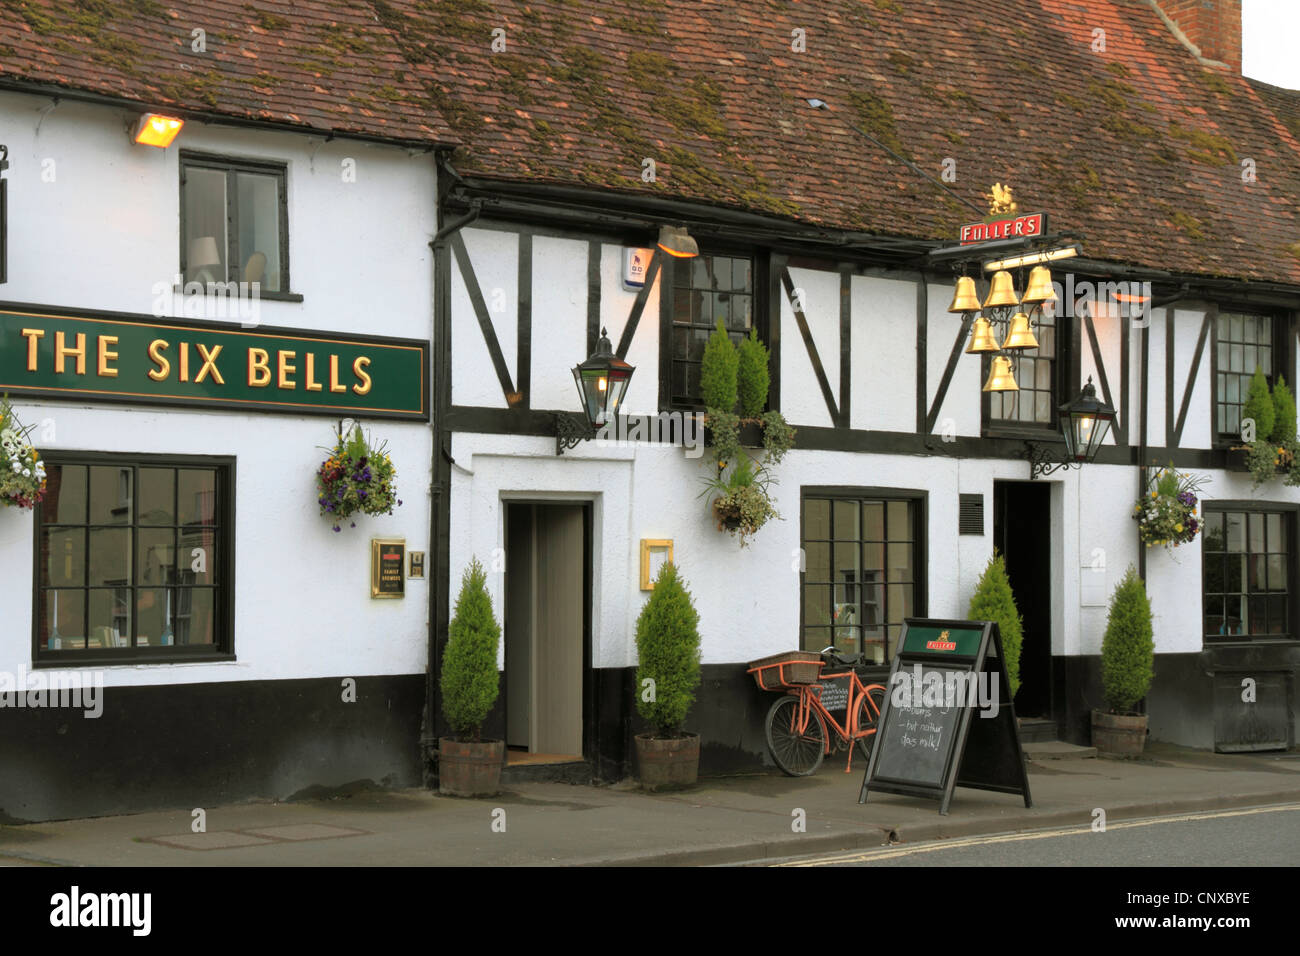 England Oxfordshire Thame High street Six bells Inn - Stock Image